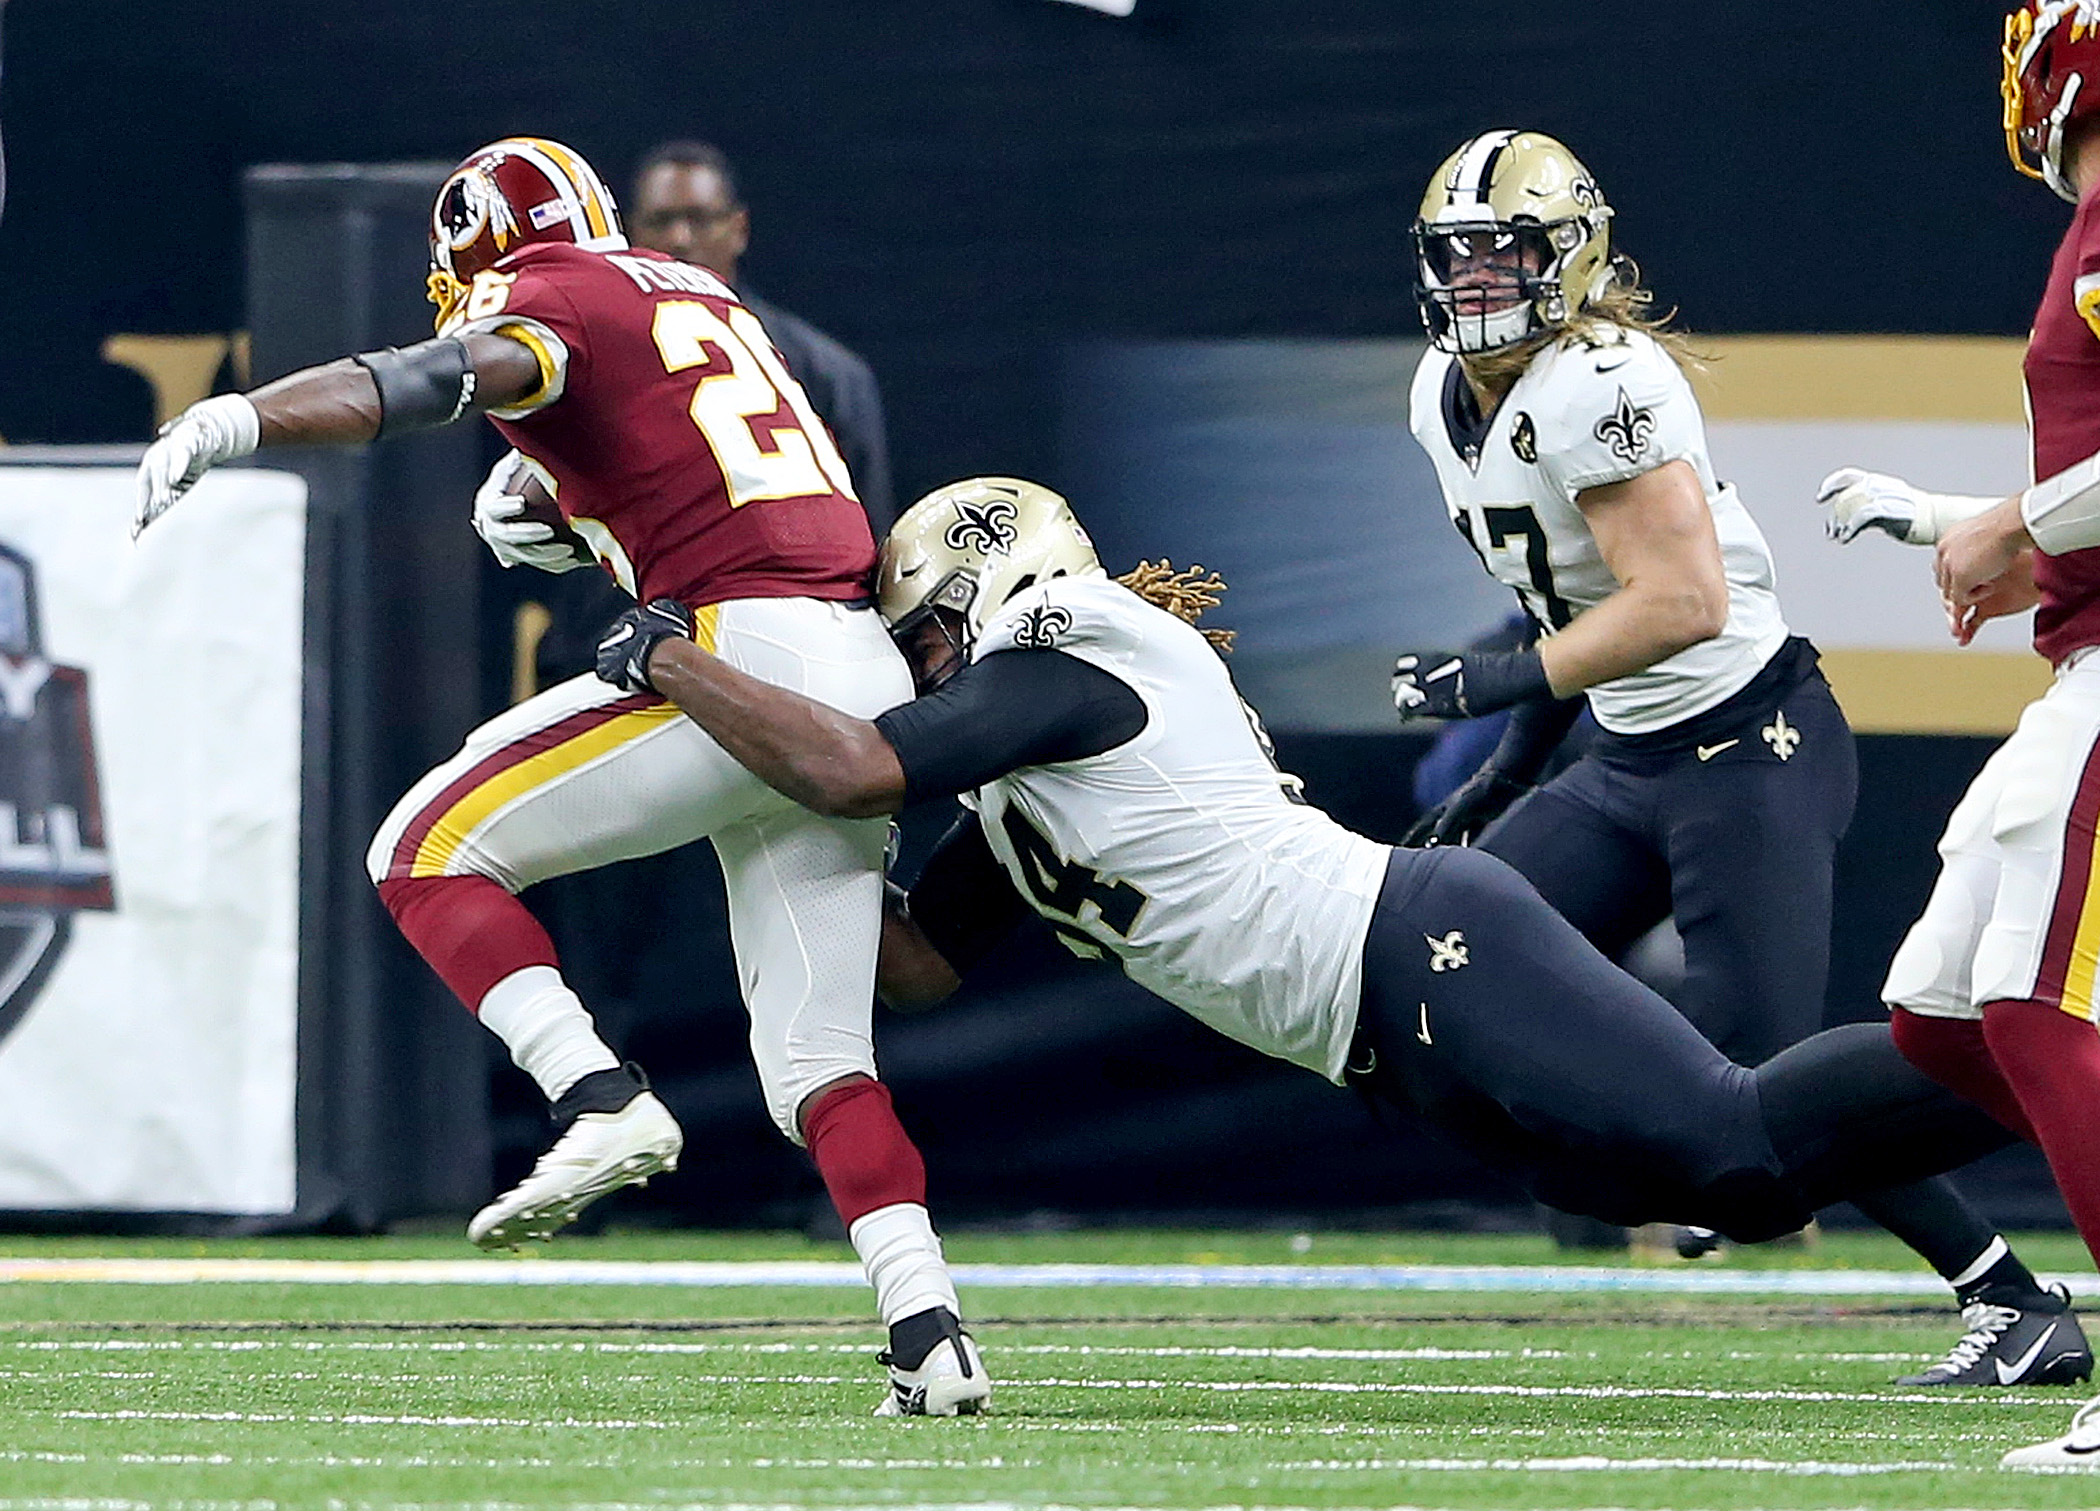 New Orleans Saints defensive end Cameron Jordan tackles Washington Redskins running back Adrian Peterson at the Superdome on Monday, October 8, 2018. (Photo by Michael DeMocker, NOLA.com | The Times-Picayune)